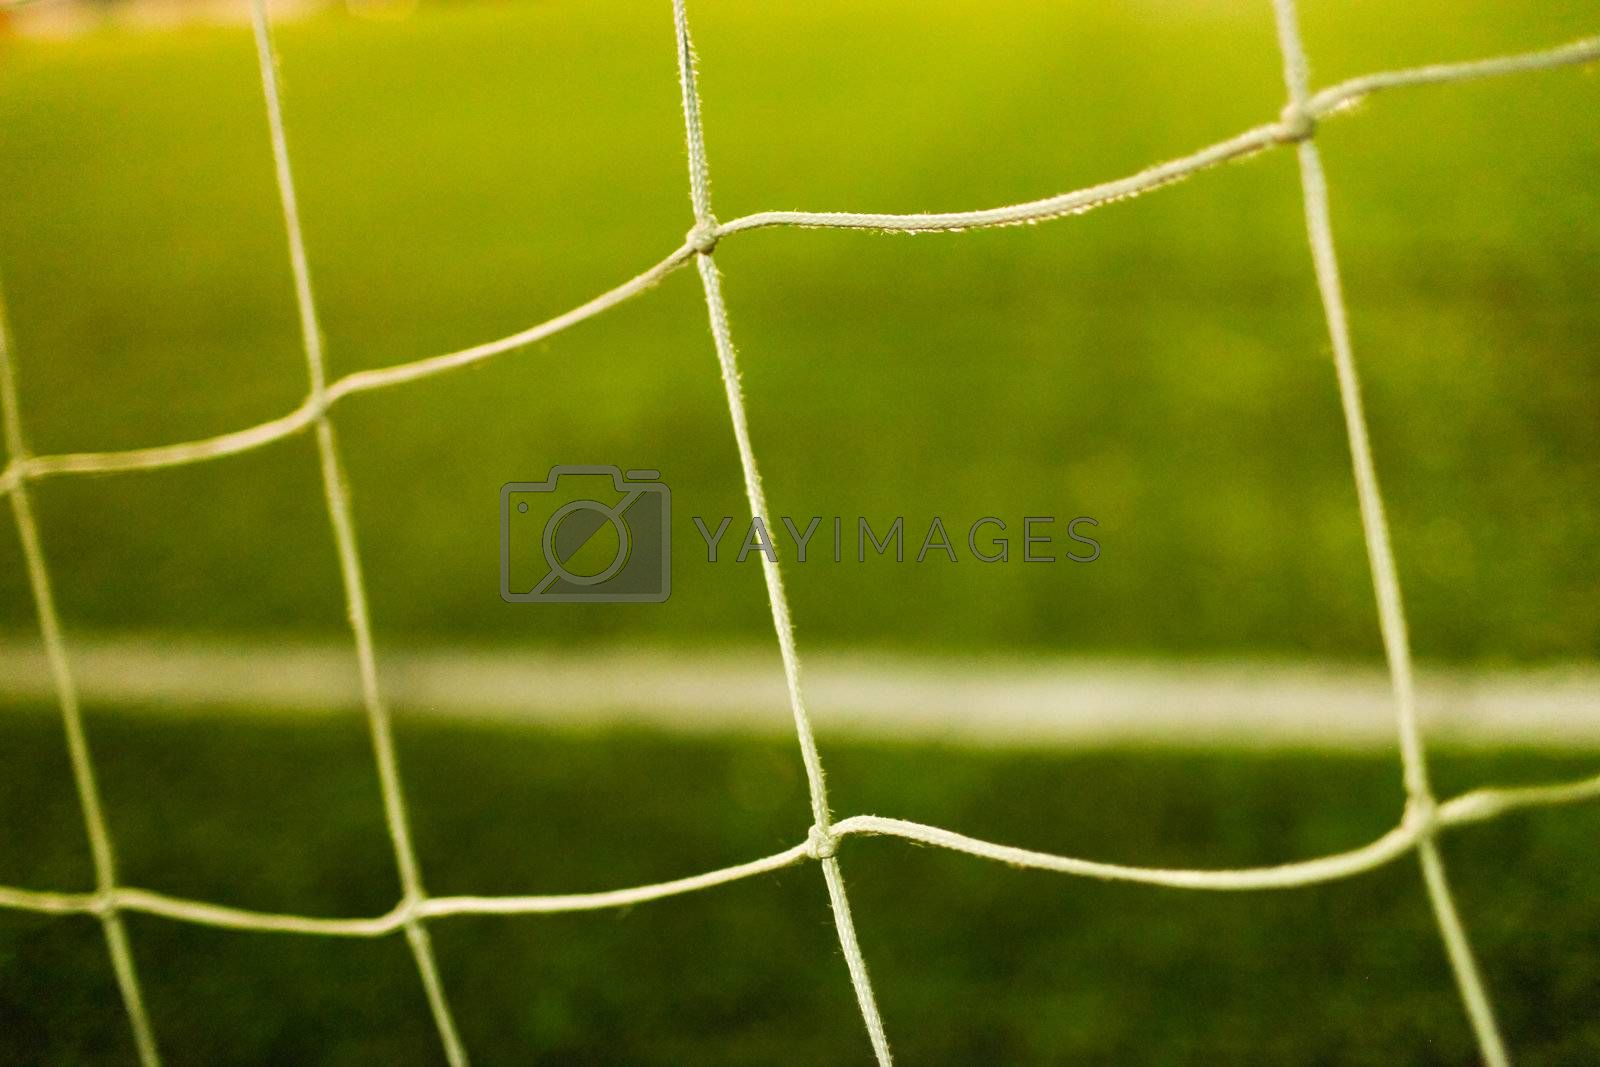 Royalty free image of football goal net close up by Lcrespi